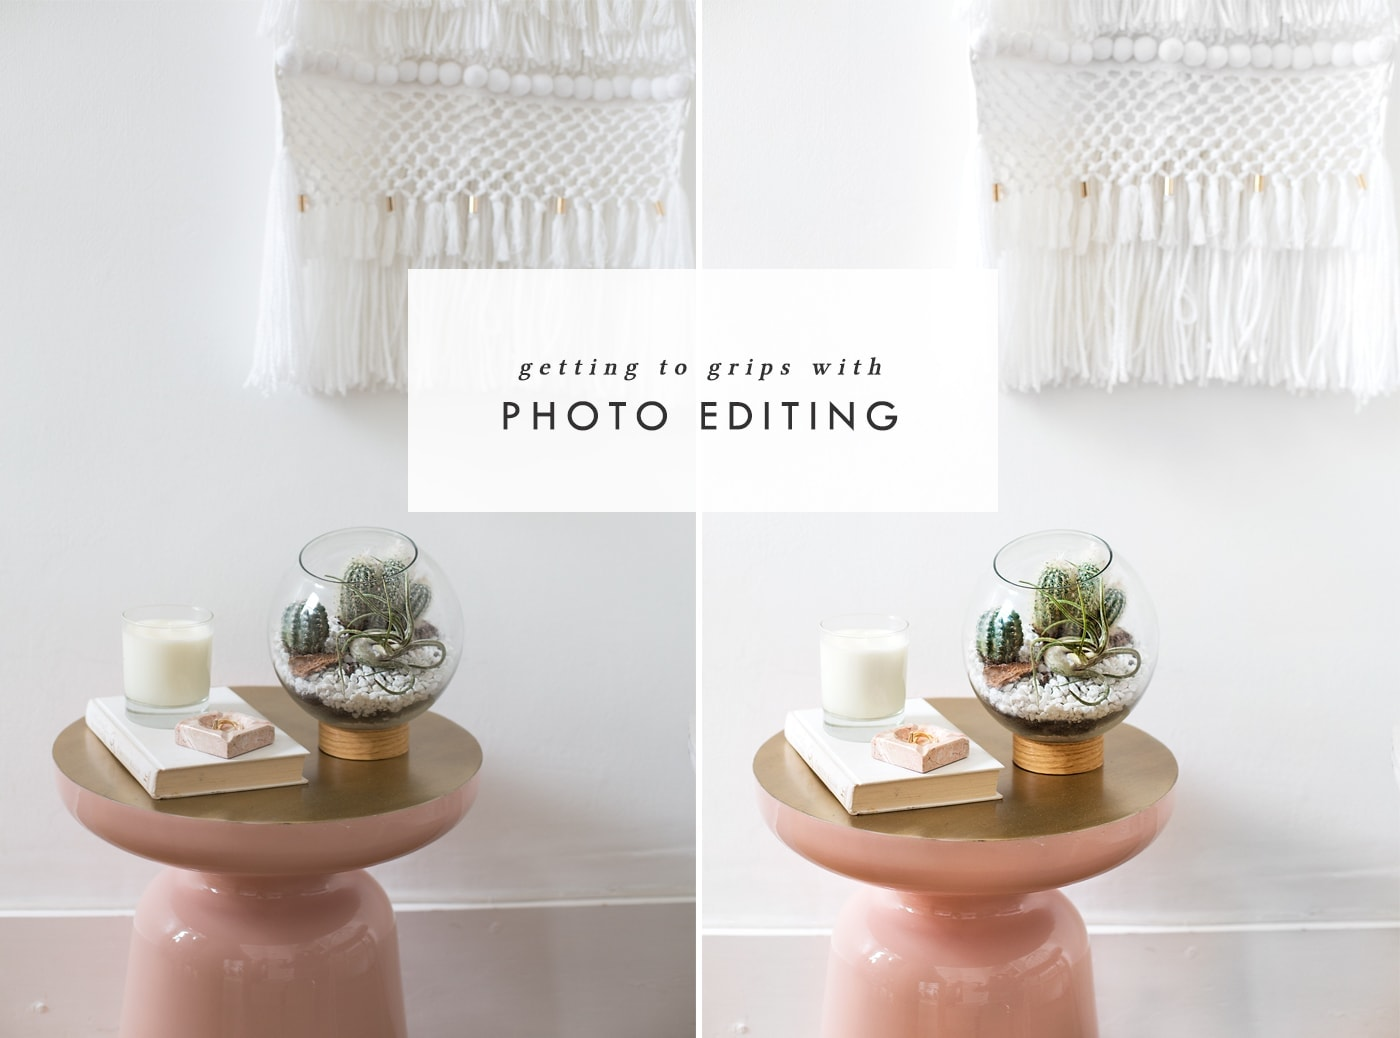 behind-the-screen-photo-editing-photography-tips